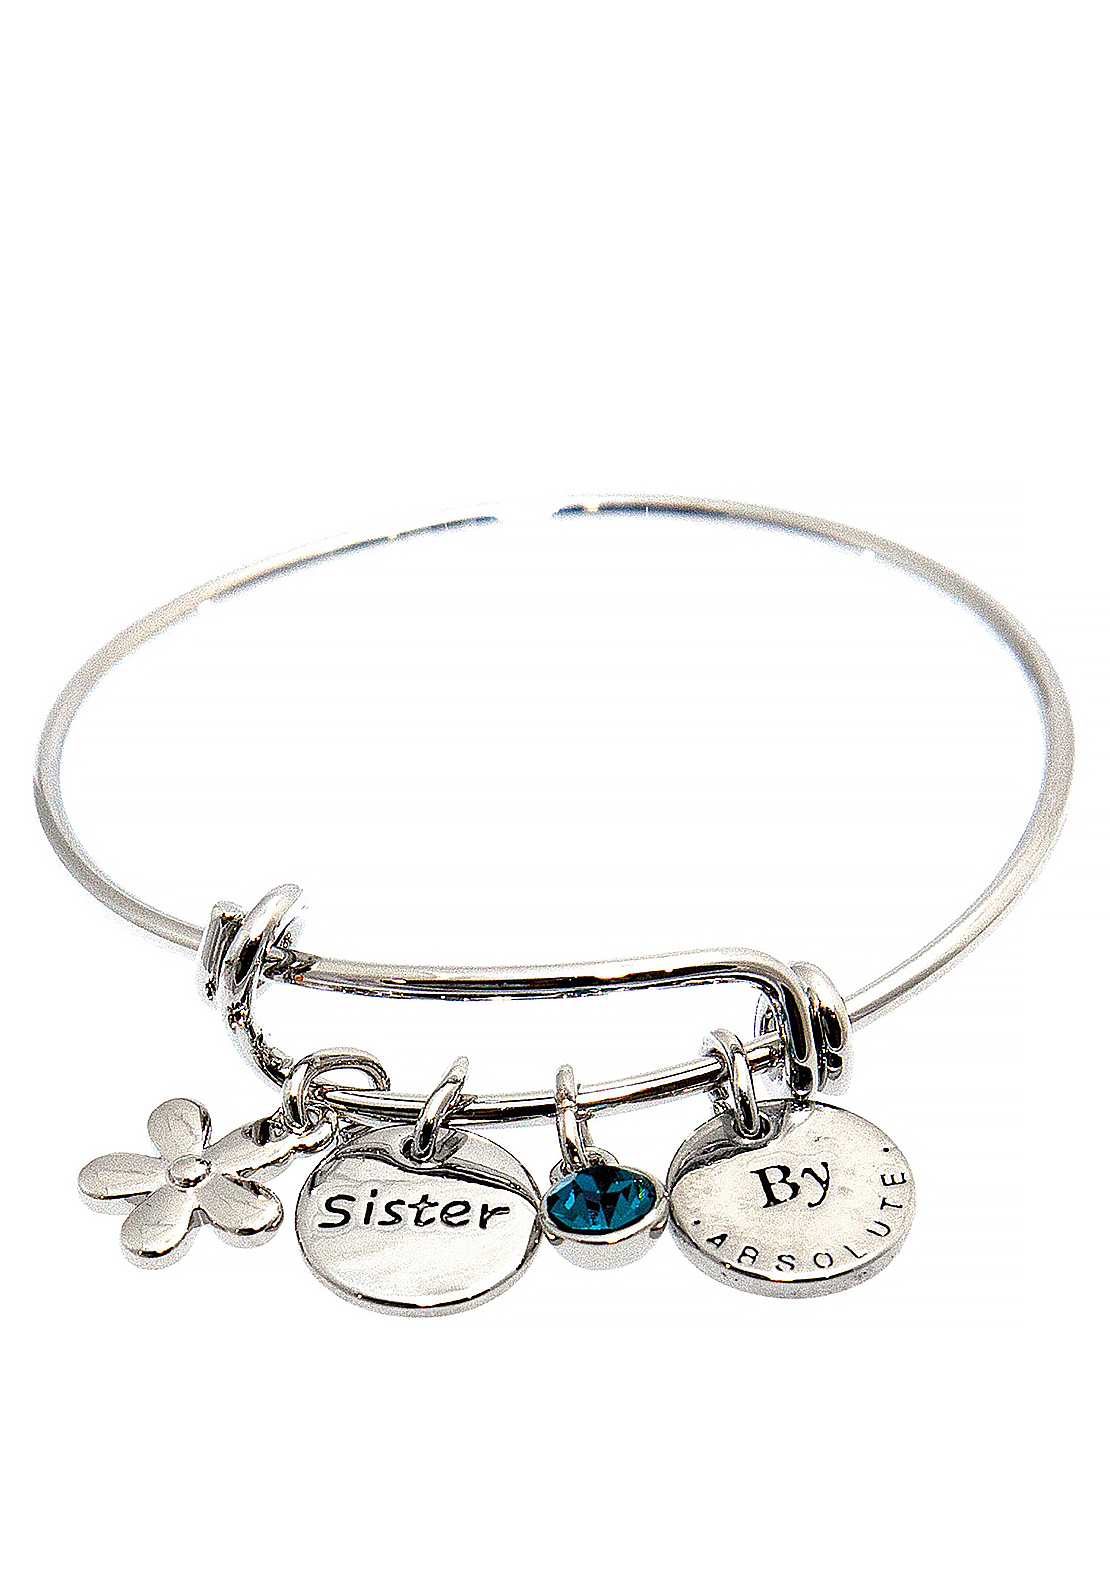 Absolute Jewellery Girls Sister Charm Bangle, Silver